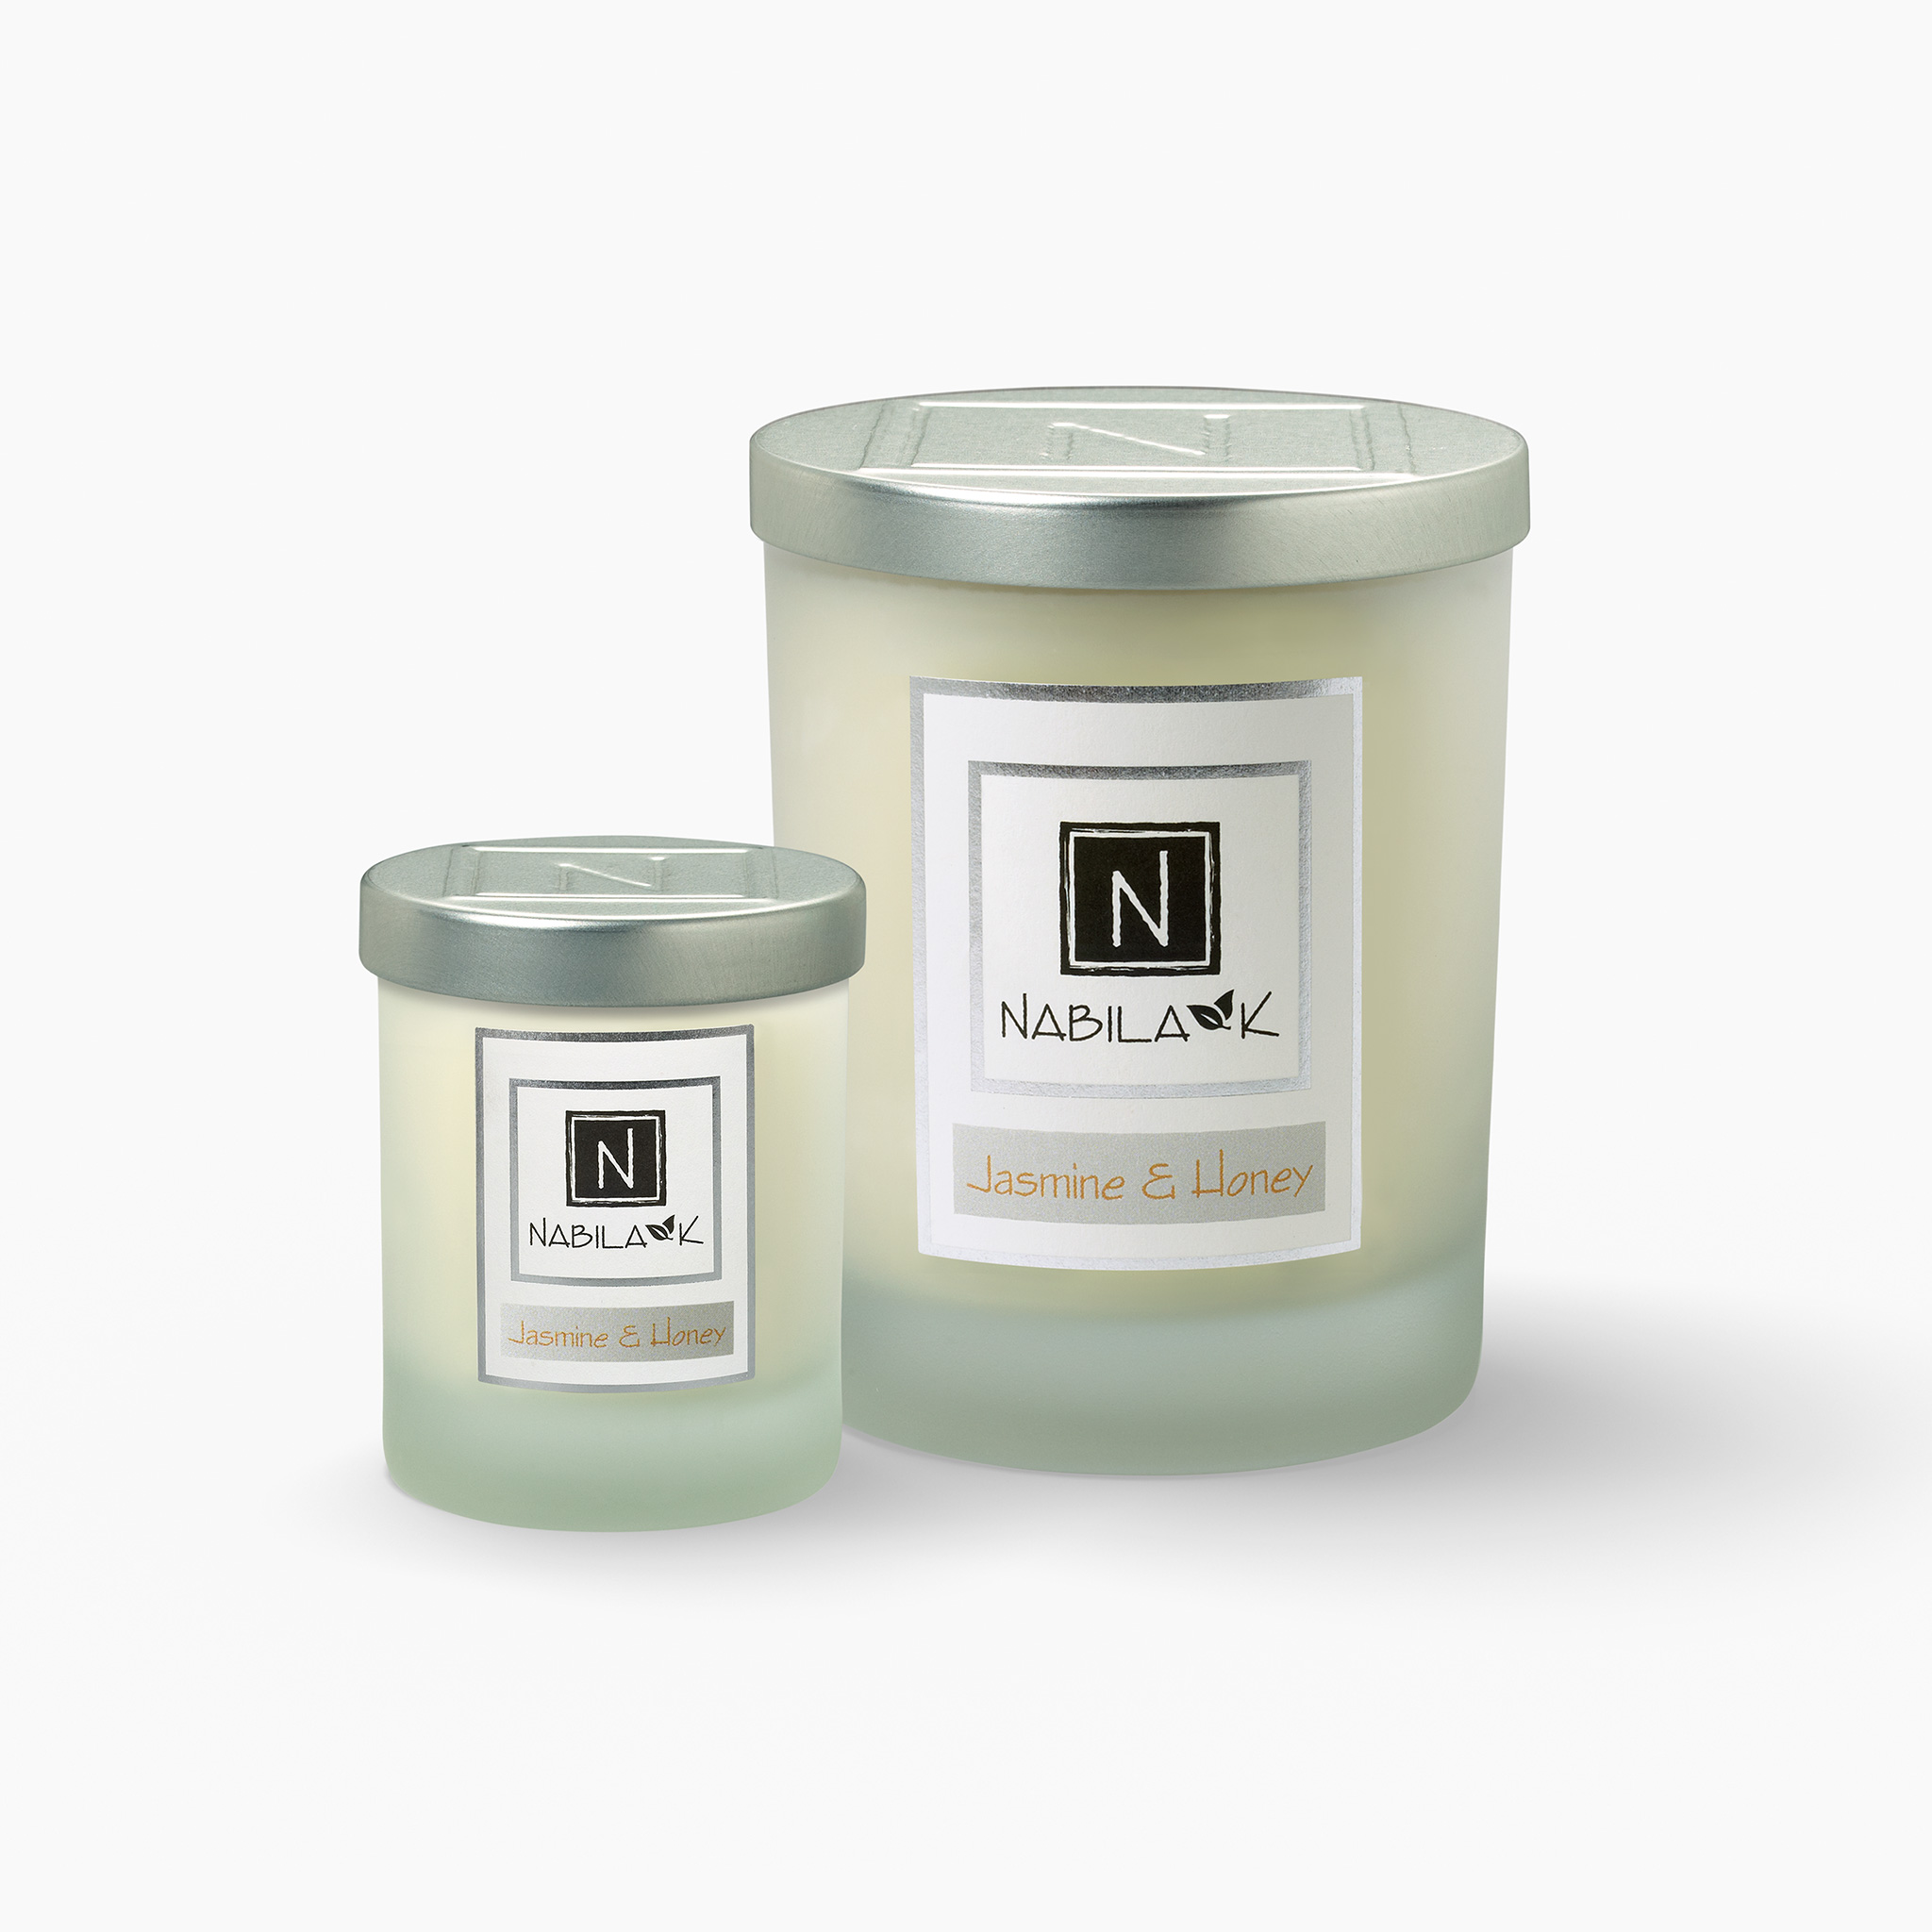 1 Large and 1 Small Version of Nabila K's Jasmine and Honey Candle